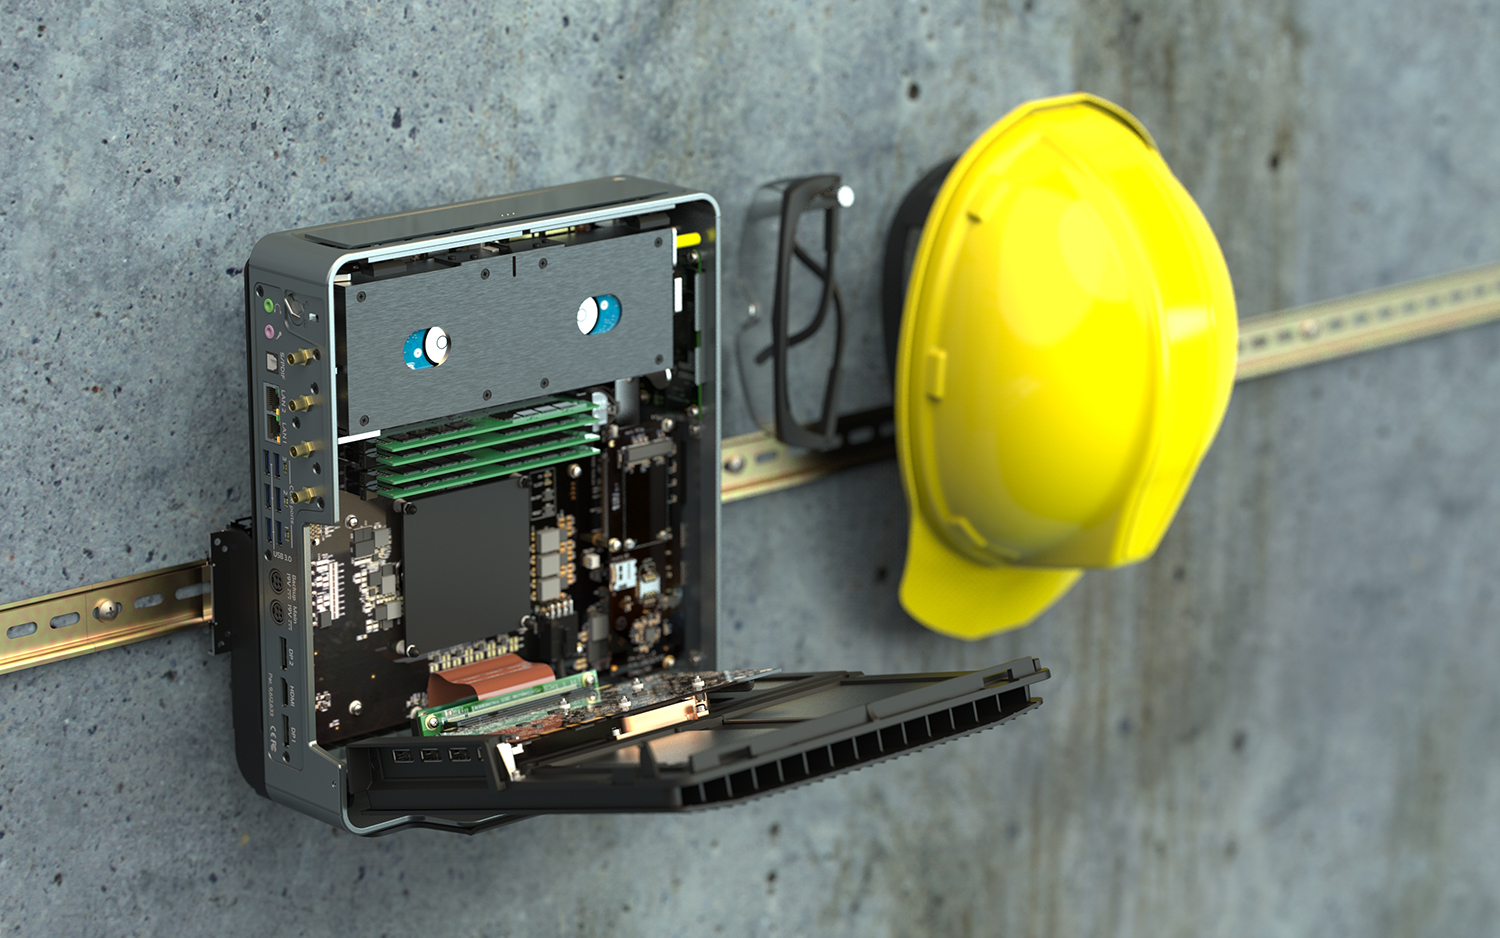 Compulab reveals Airtop3 IoT edge server that can passively